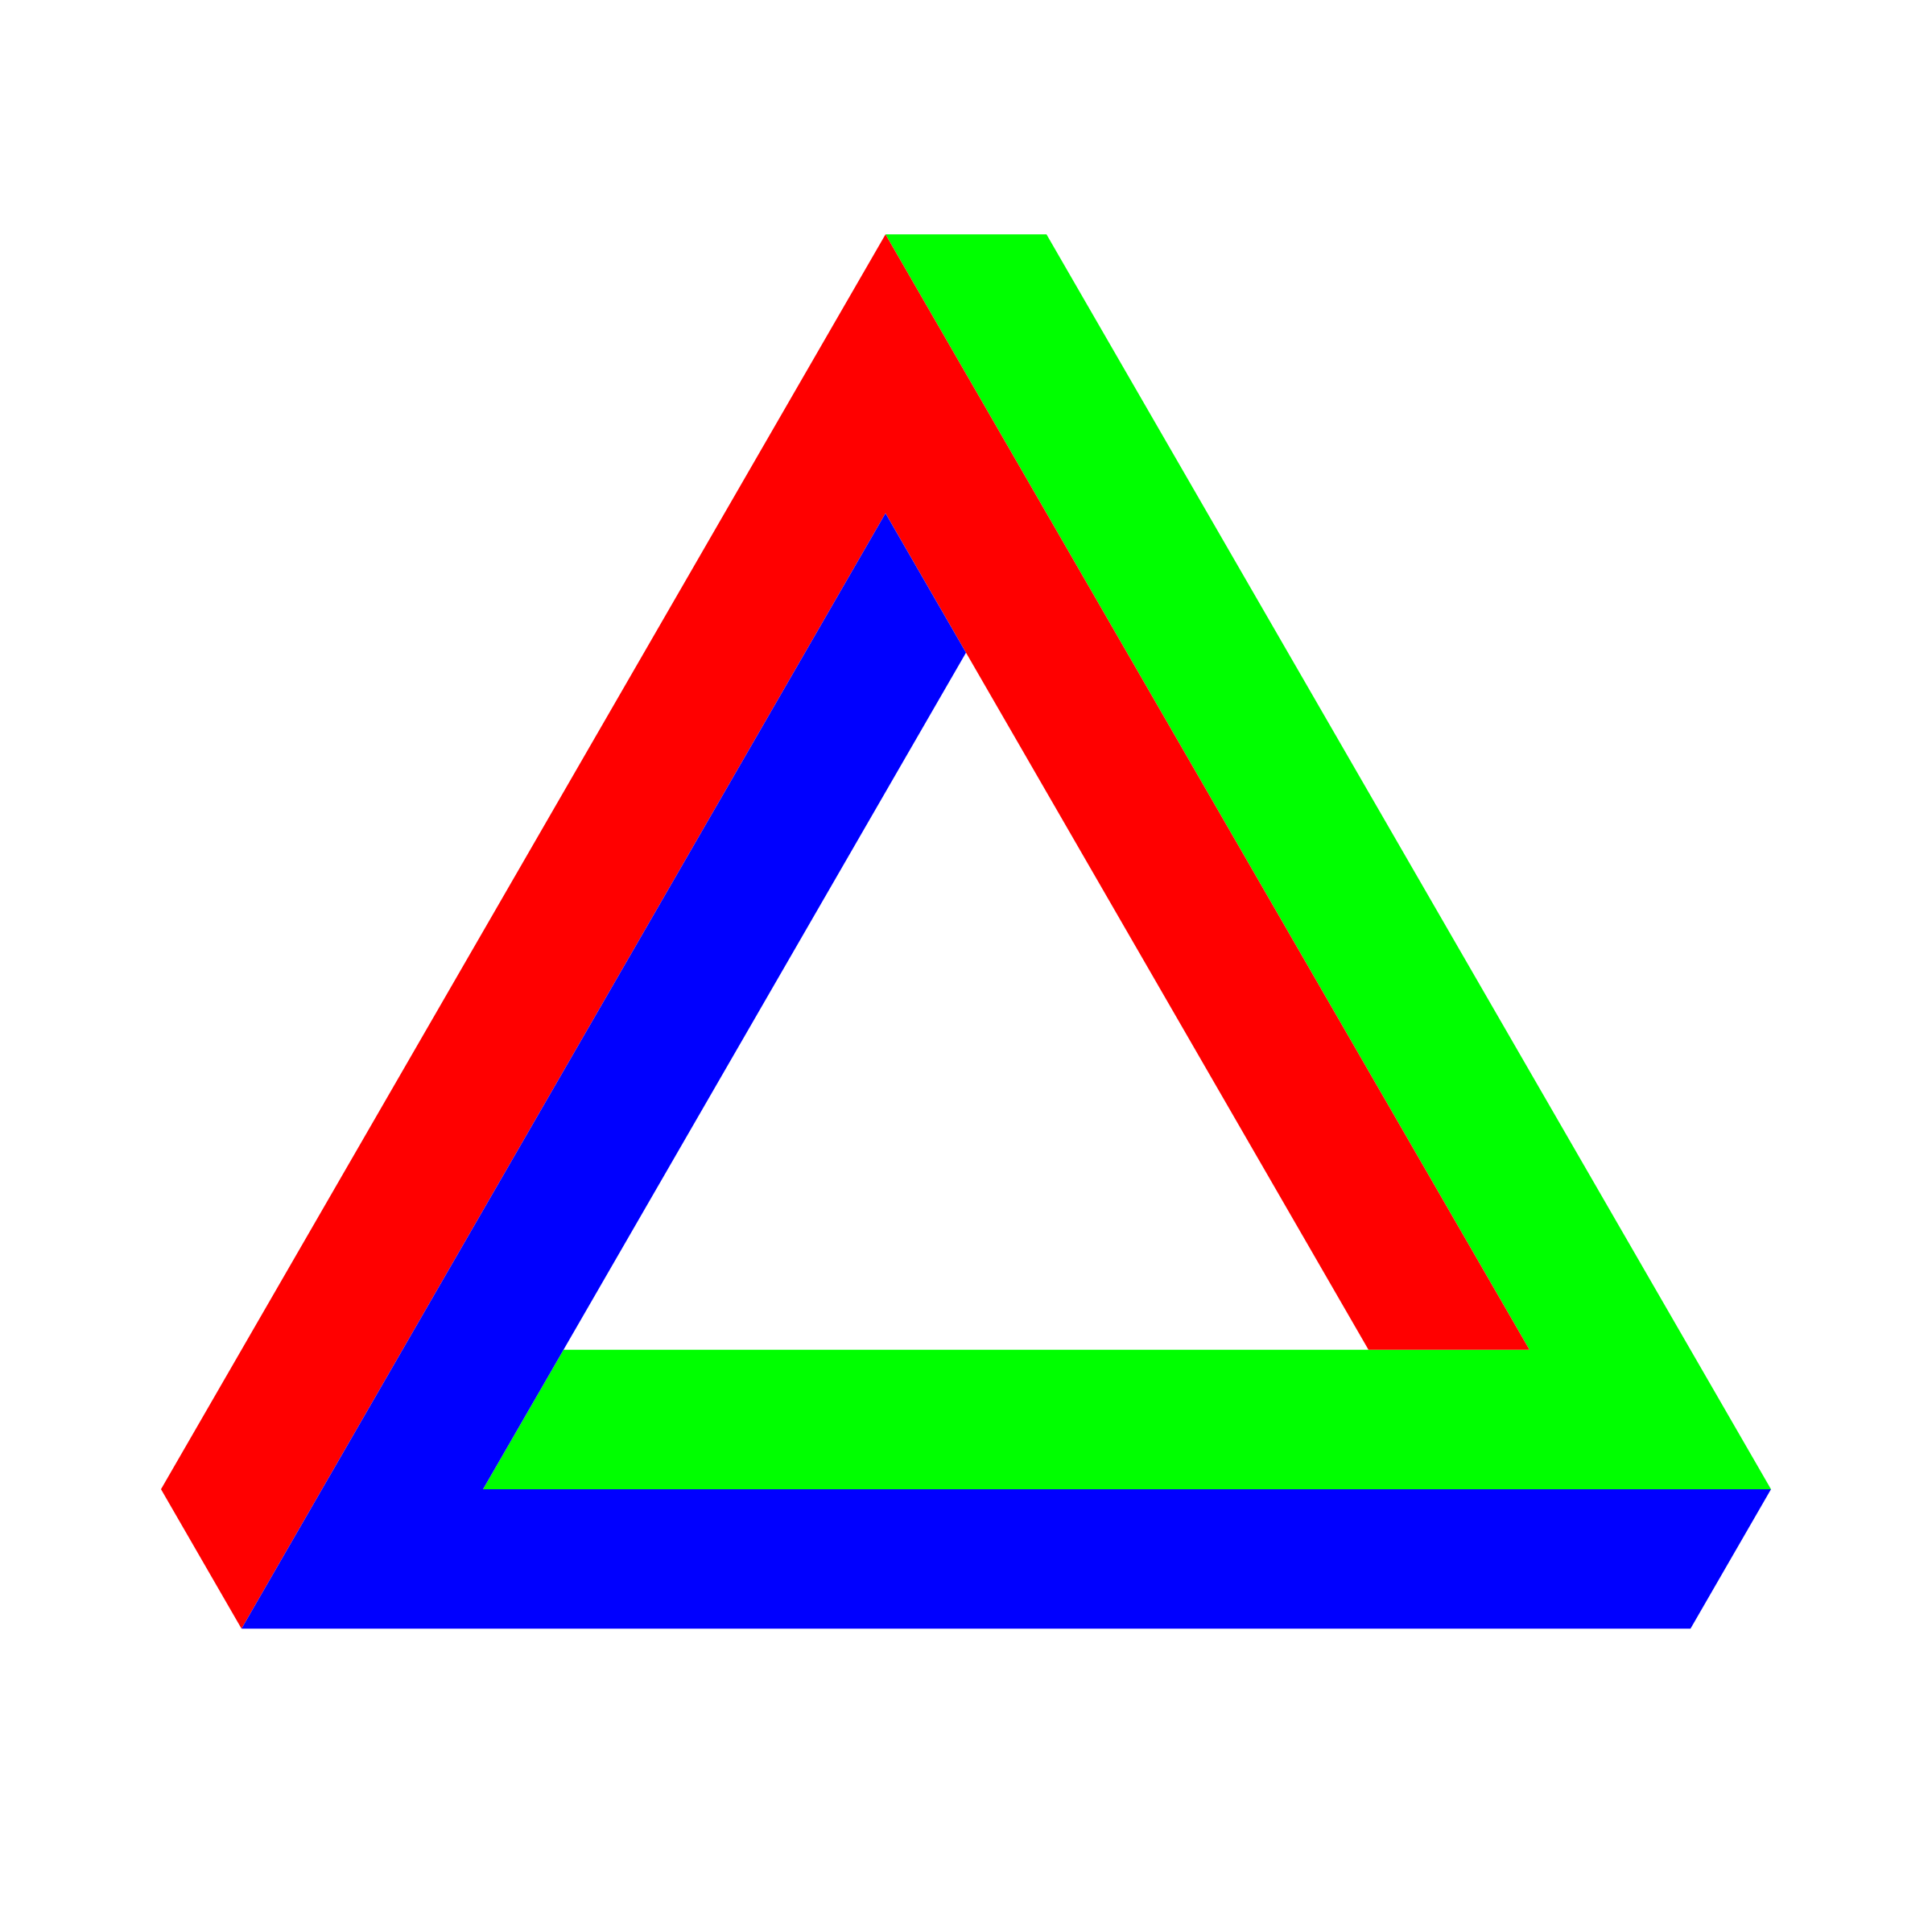 Penrose Triangle RGB by 10binary